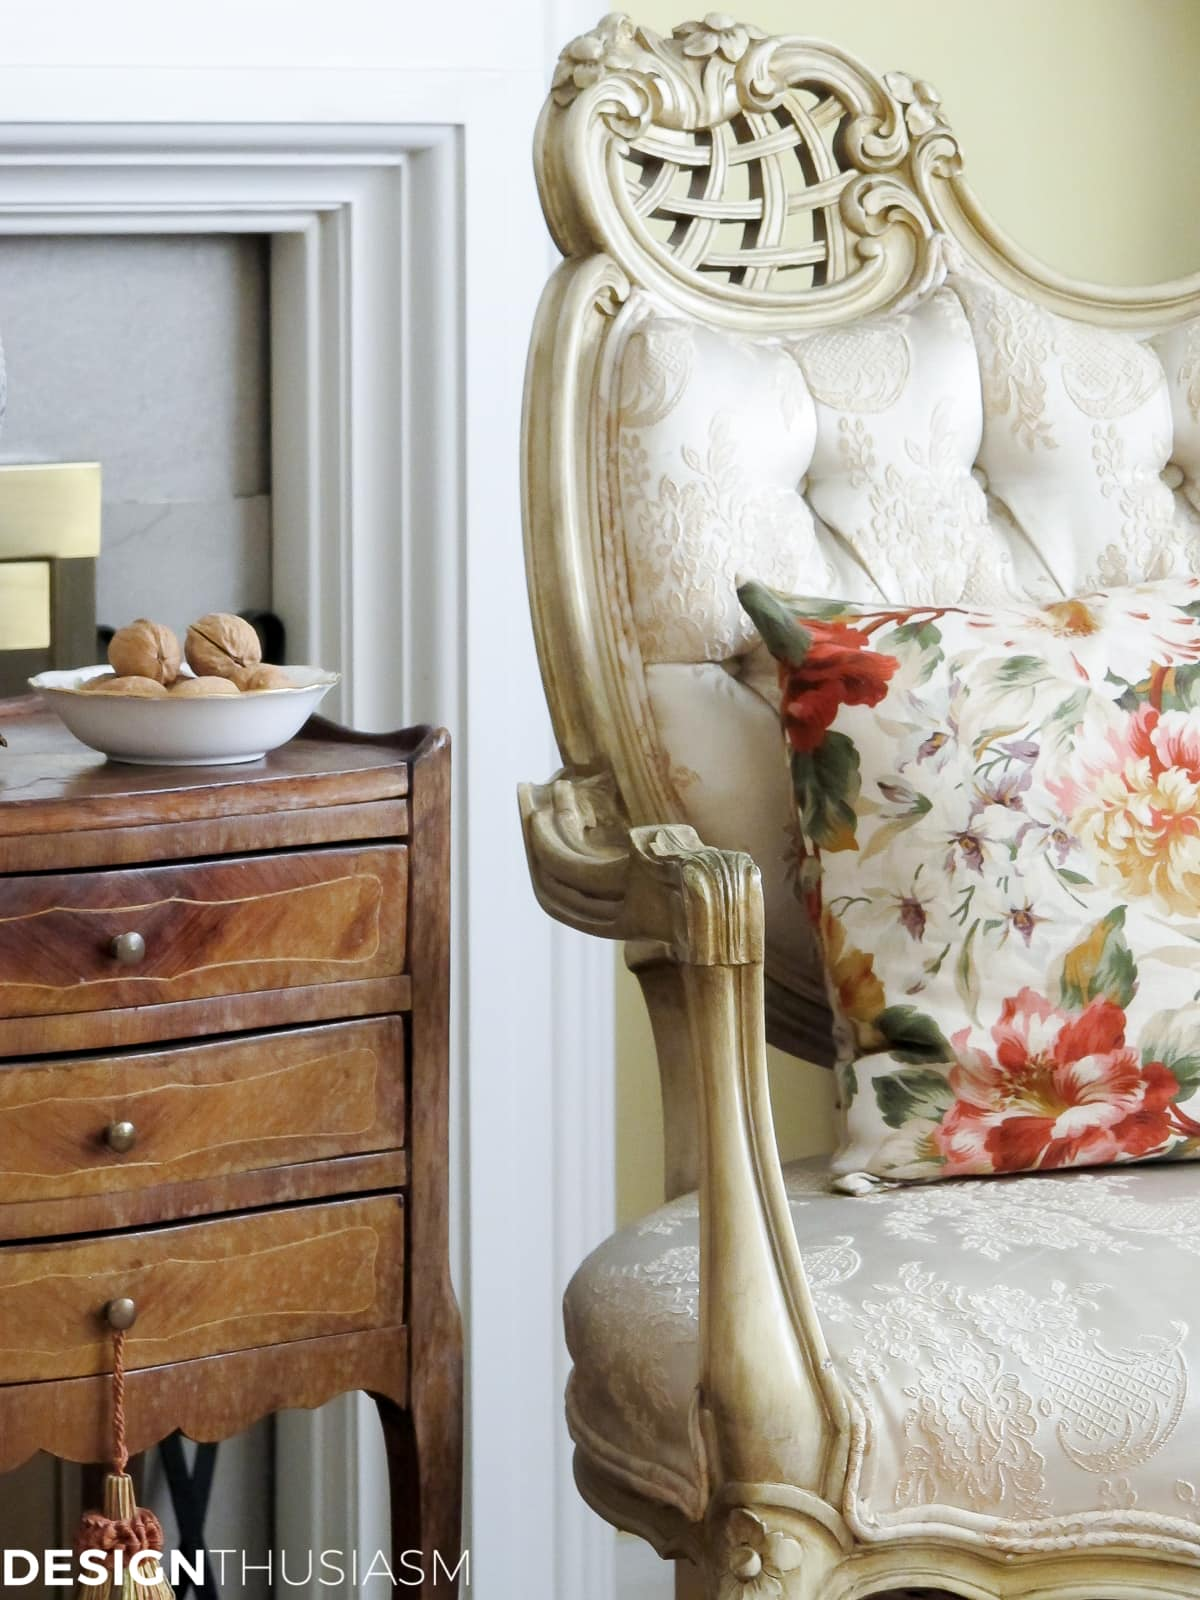 6 Defining Style Elements I Use In Every Room - Designthusiasm.com